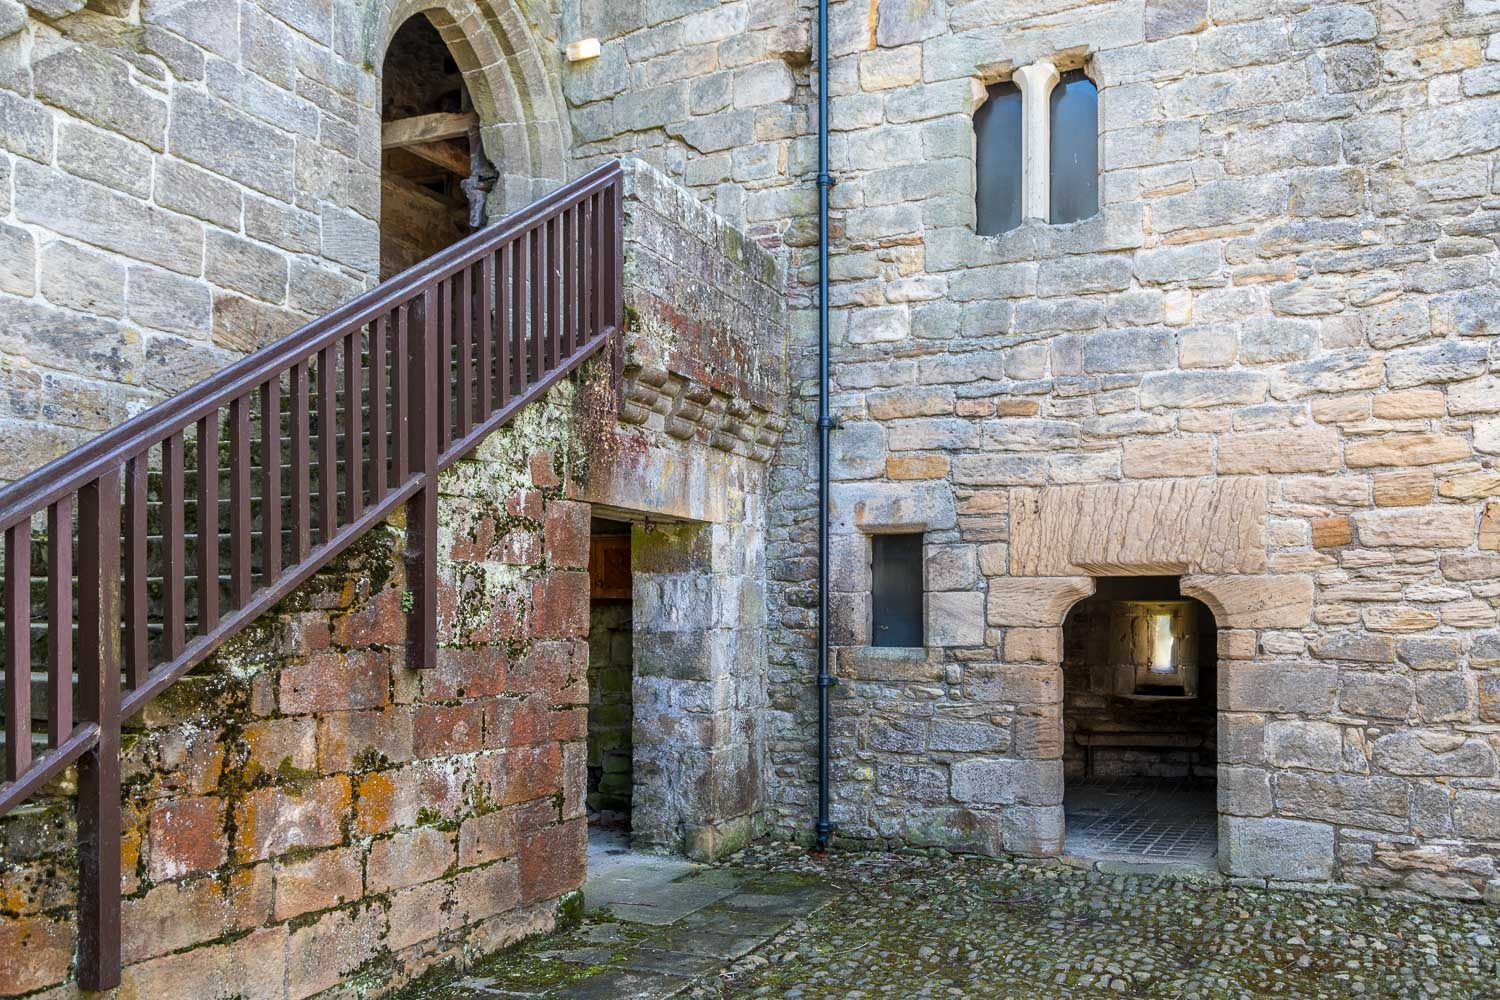 Corbridge walk, Aydon Castle courtyard